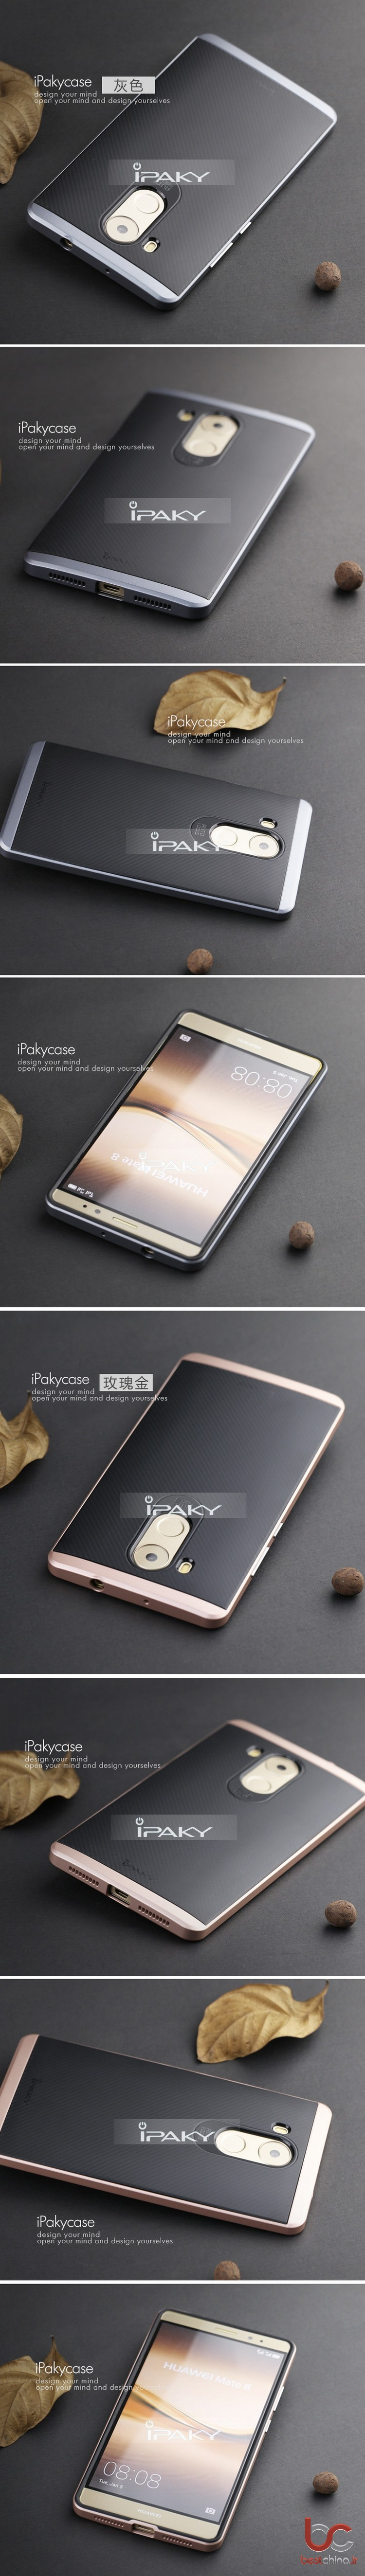 Huawei Mate 8 iPaky Back Cover (2)